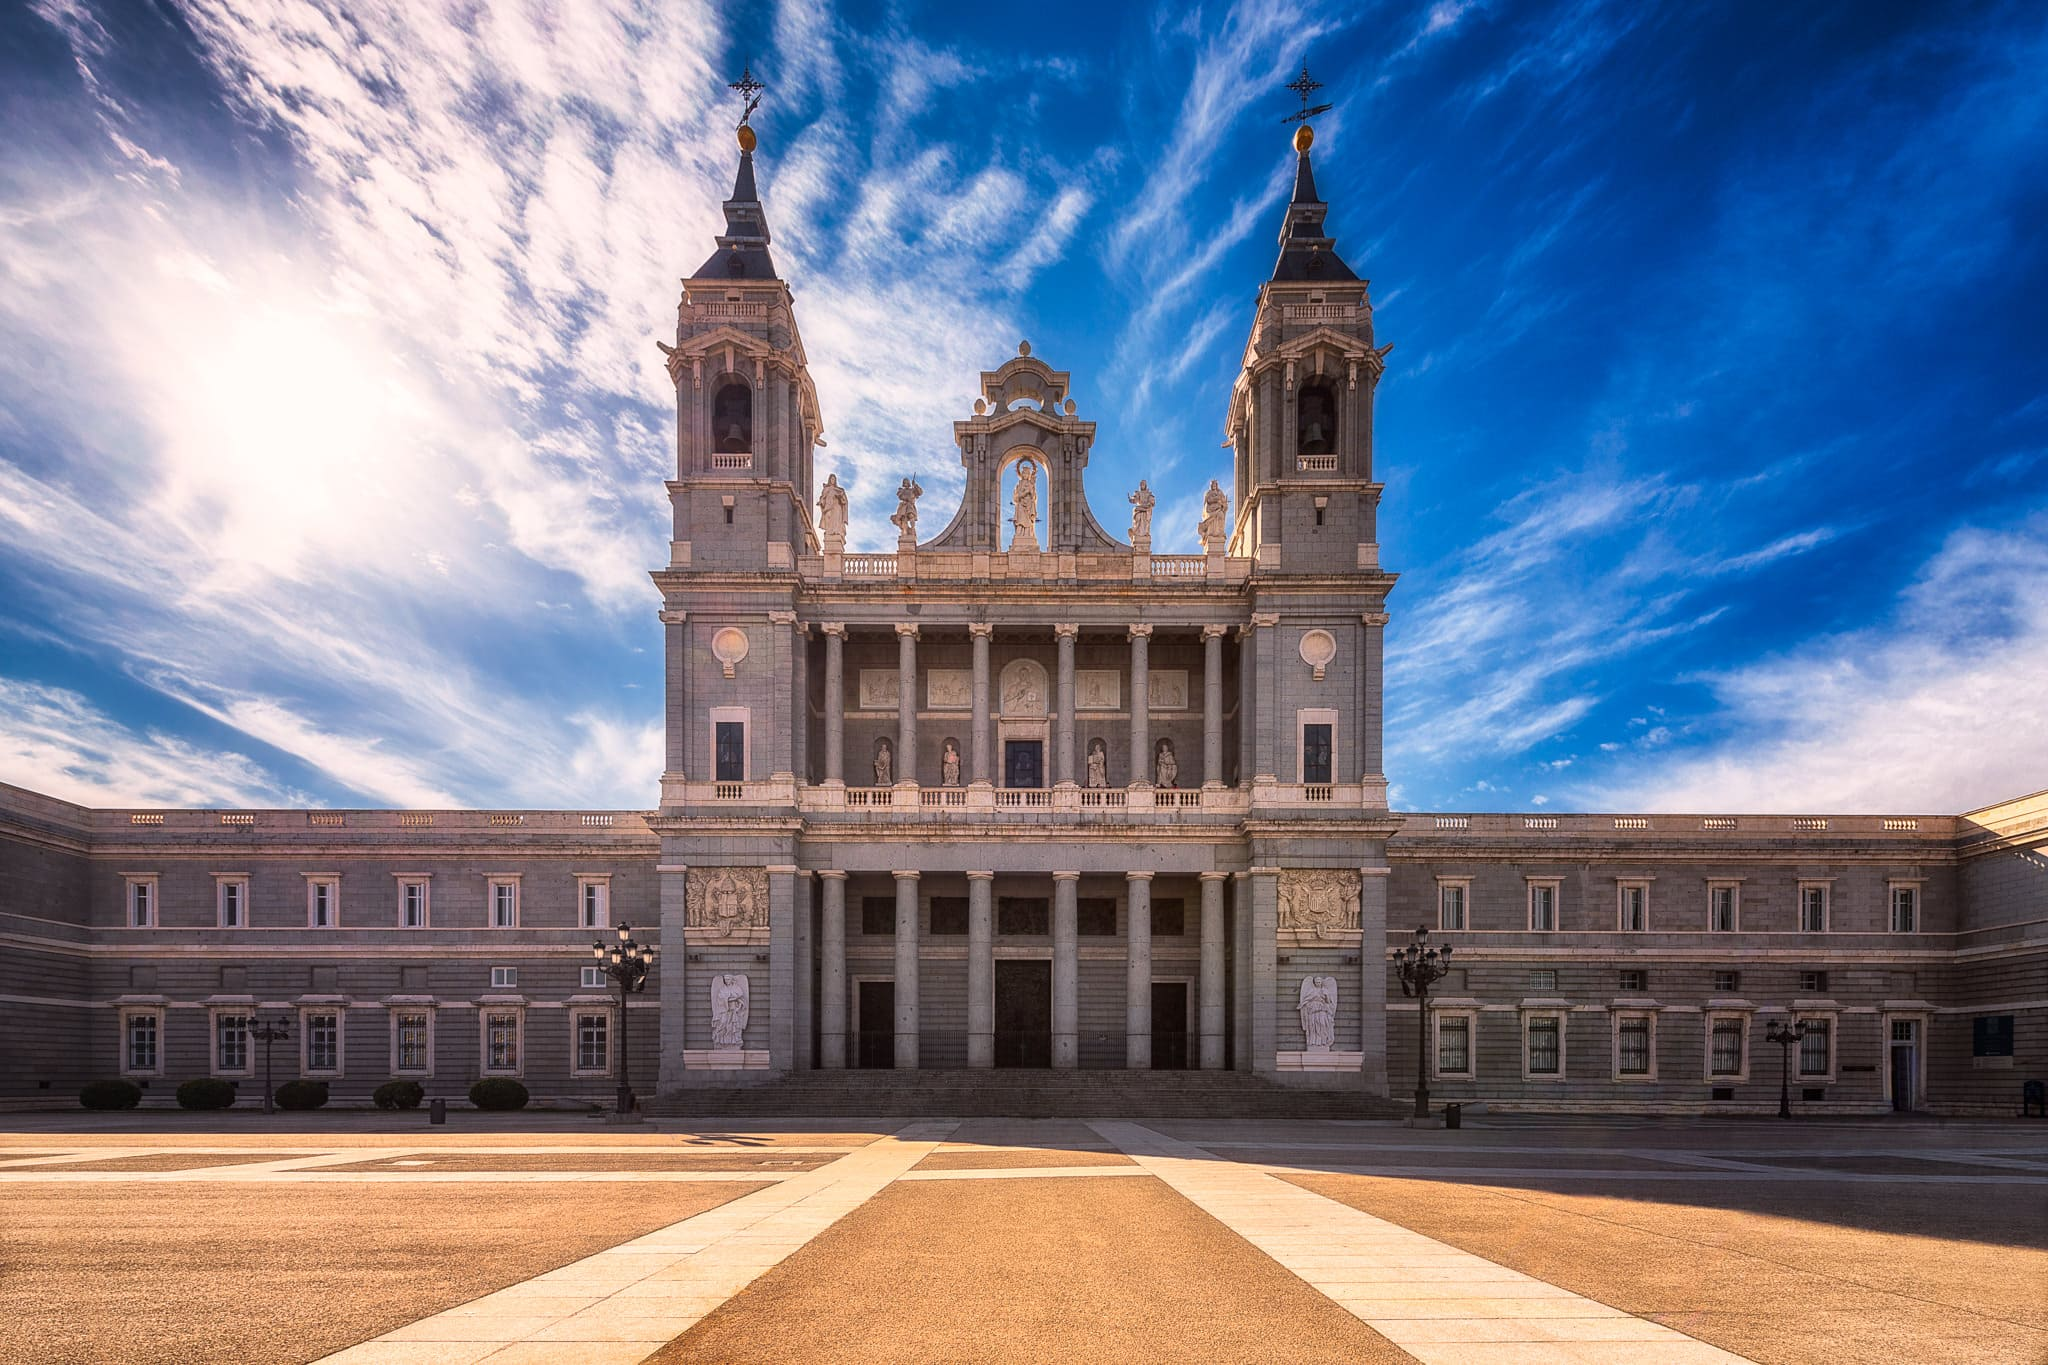 Almudena Cathedral | Madrid, Spain